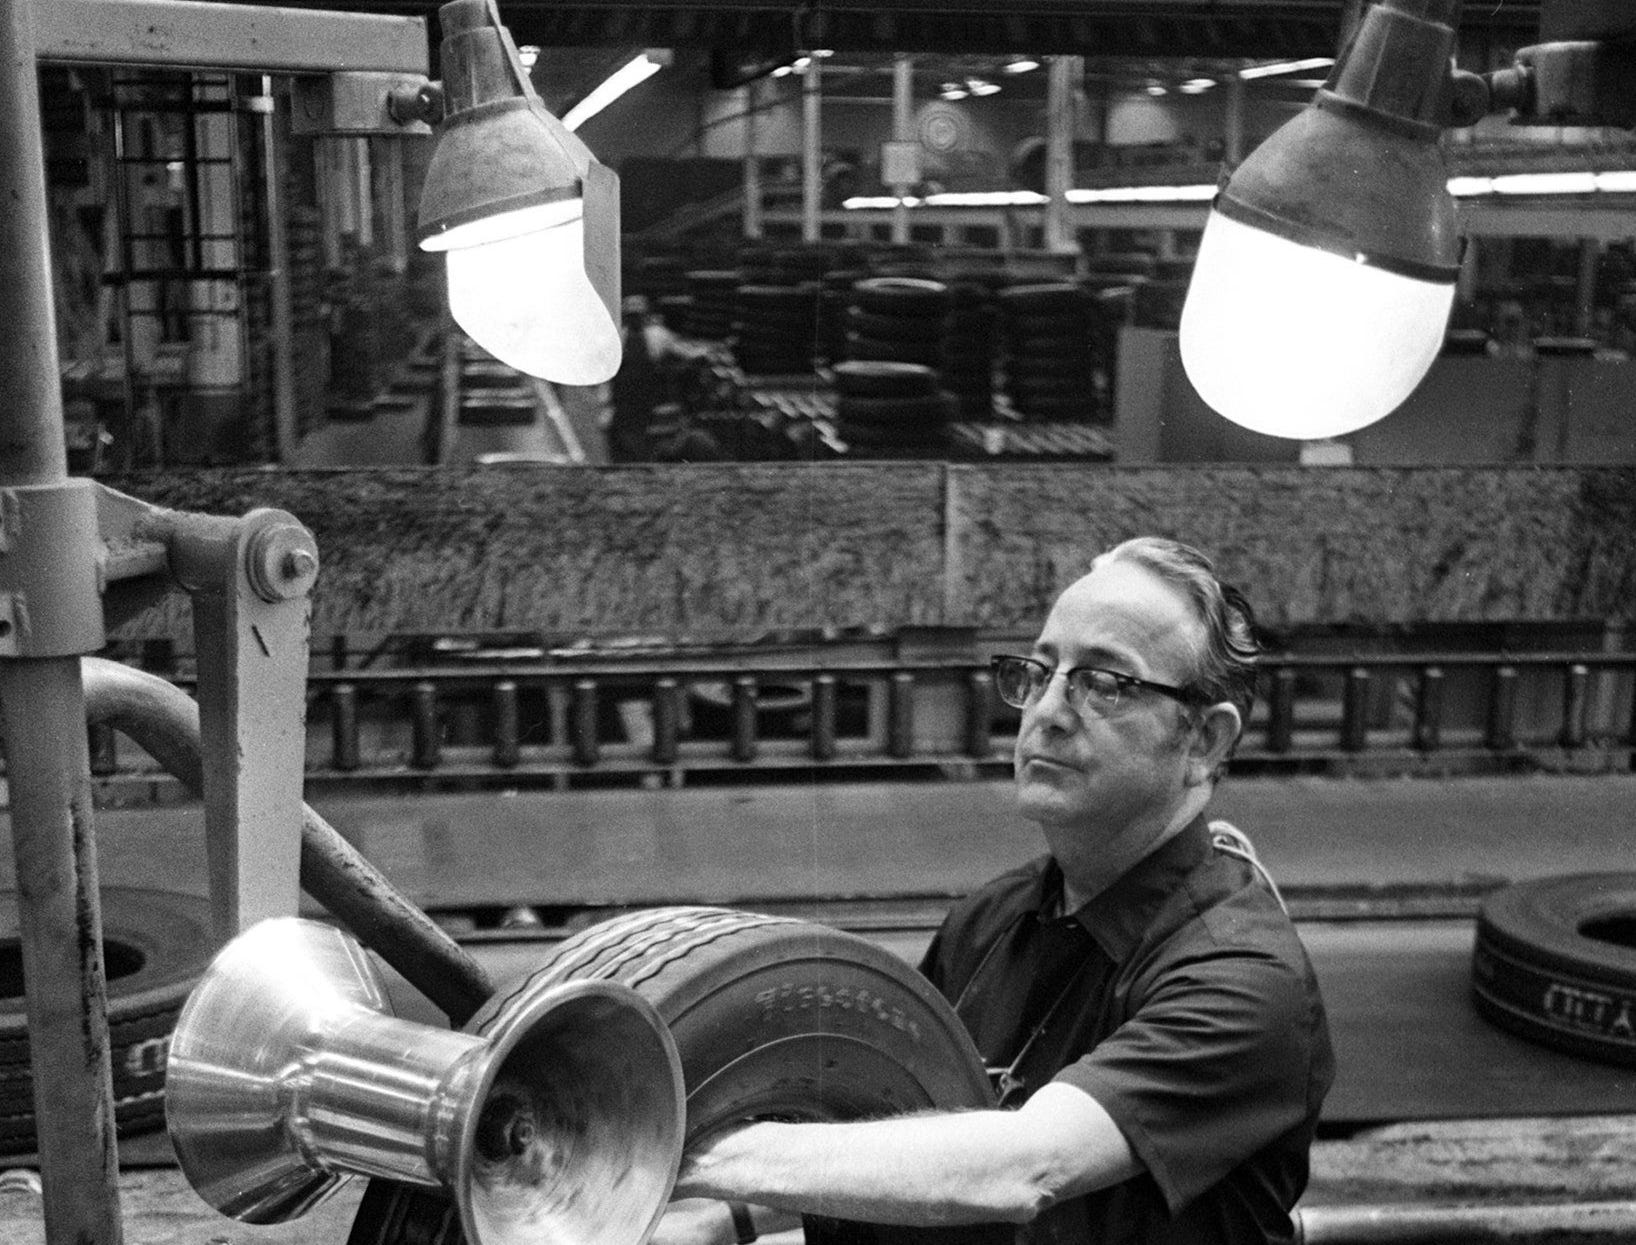 An inspector checks tires coming off the assembly line at the Firestone Tire & Rubber plant on 1 Dec 1972. The plant opened in 1937 and at one time employed approximately 1,600 people. At the time shut down proceedings began, there were approximately 1,000 employees. The plant, which had 1.4 million square feet and occupied 85 acres on Firestone, closed in March of 1983.  Dave Darnell/The Commercial Appeal An inspector checks tires coming off the assembly line at the Firestone Tire & Rubber plant on 1 Dec 1972. The plant opened in 1937 and at one time employed approximately 1,600 people. At the time shut down proceedings began, there were approximately 1,000 employees. The plant, which had 1.4 million square feet and occupied 85 acres on Firestone, closed in March of 1983.